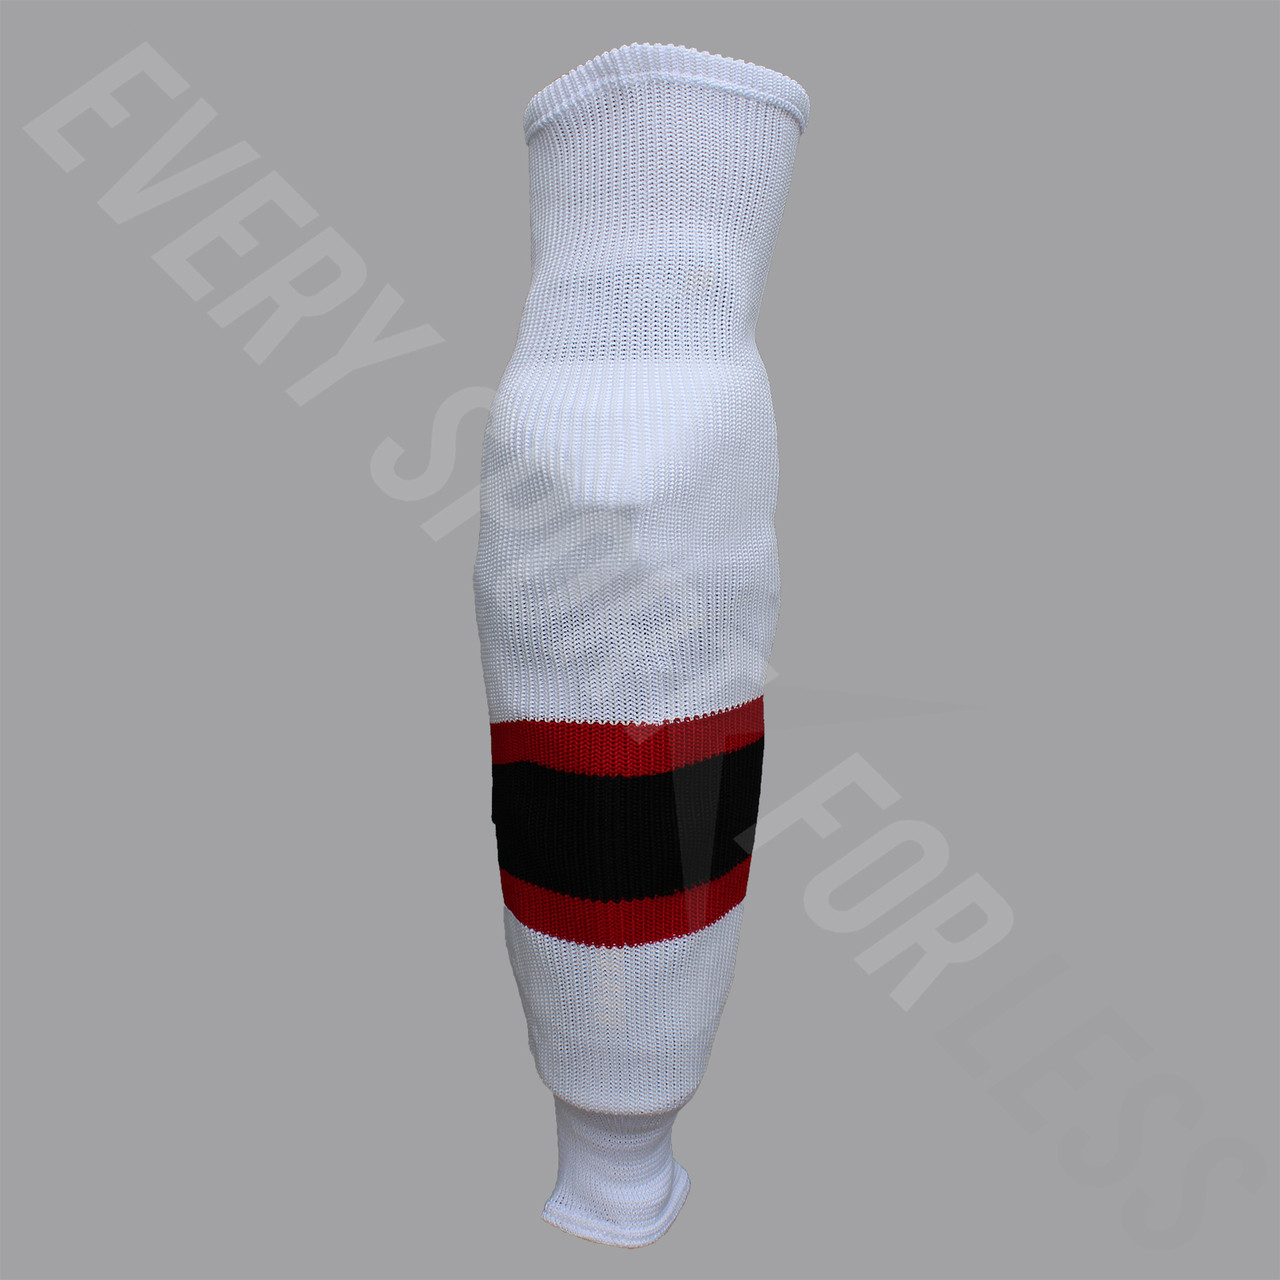 cfc77ba70f11 ... KOBE 9800 Hockey Socks - New Jersey Devils White ...